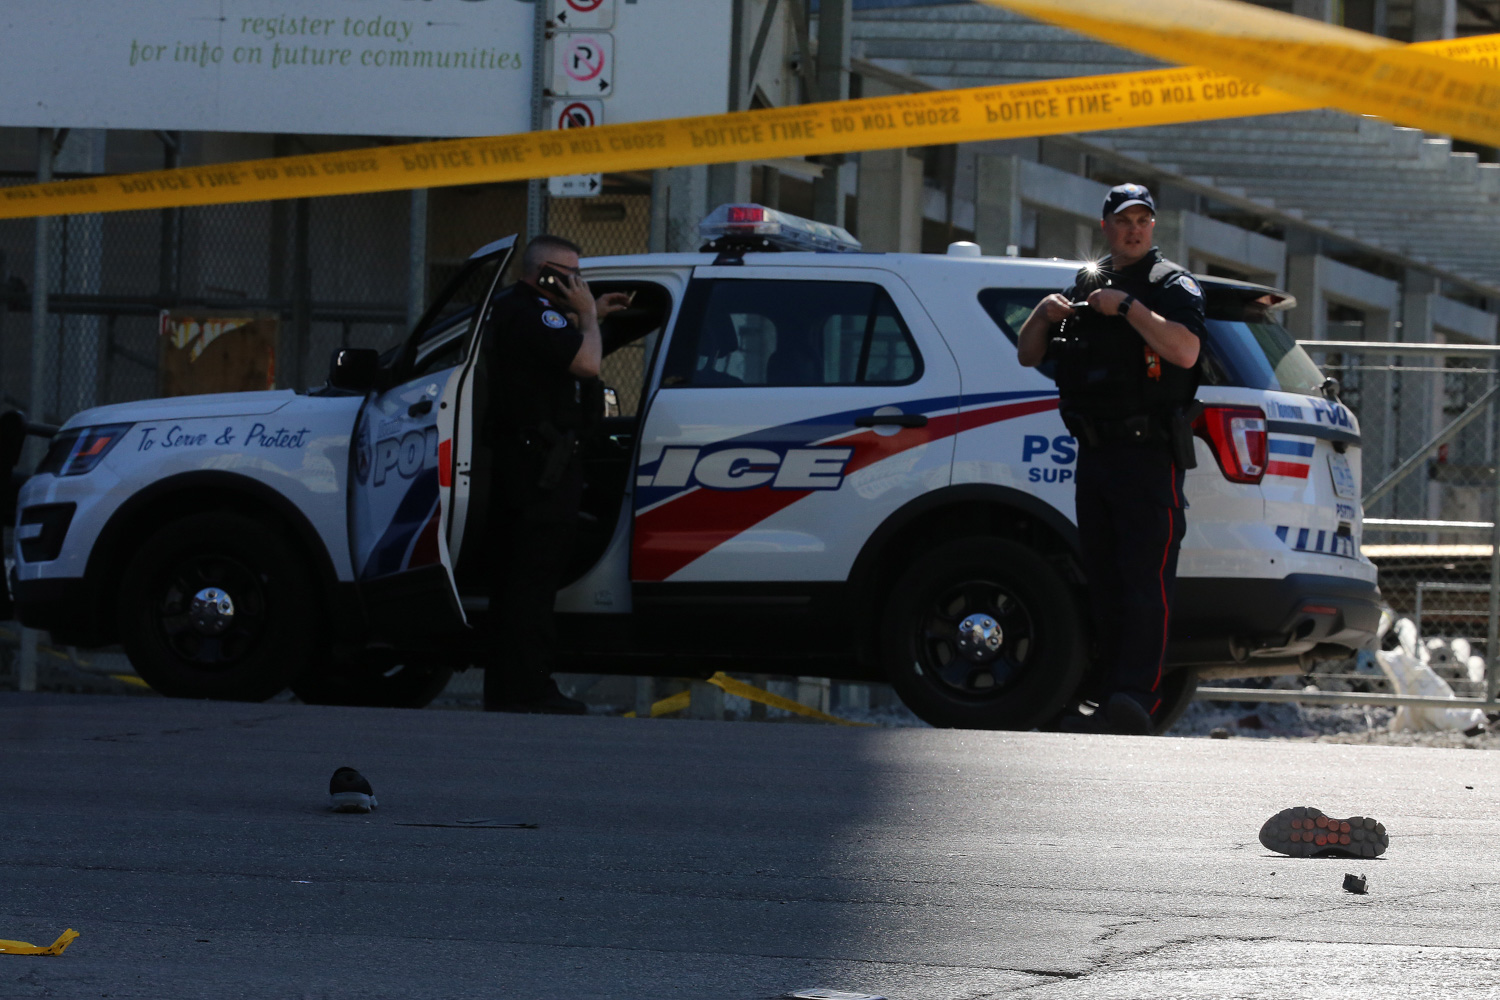 """<div class=""""meta image-caption""""><div class=""""origin-logo origin-image none""""><span>none</span></div><span class=""""caption-text"""">Police have Yonge Street blocked off at Parkview Avenue where on of the victims lies on the East side of the street as the Police investigate a van that ran down pedestrians. (Steve Russell/Toronto Star via Getty Images)</span></div>"""